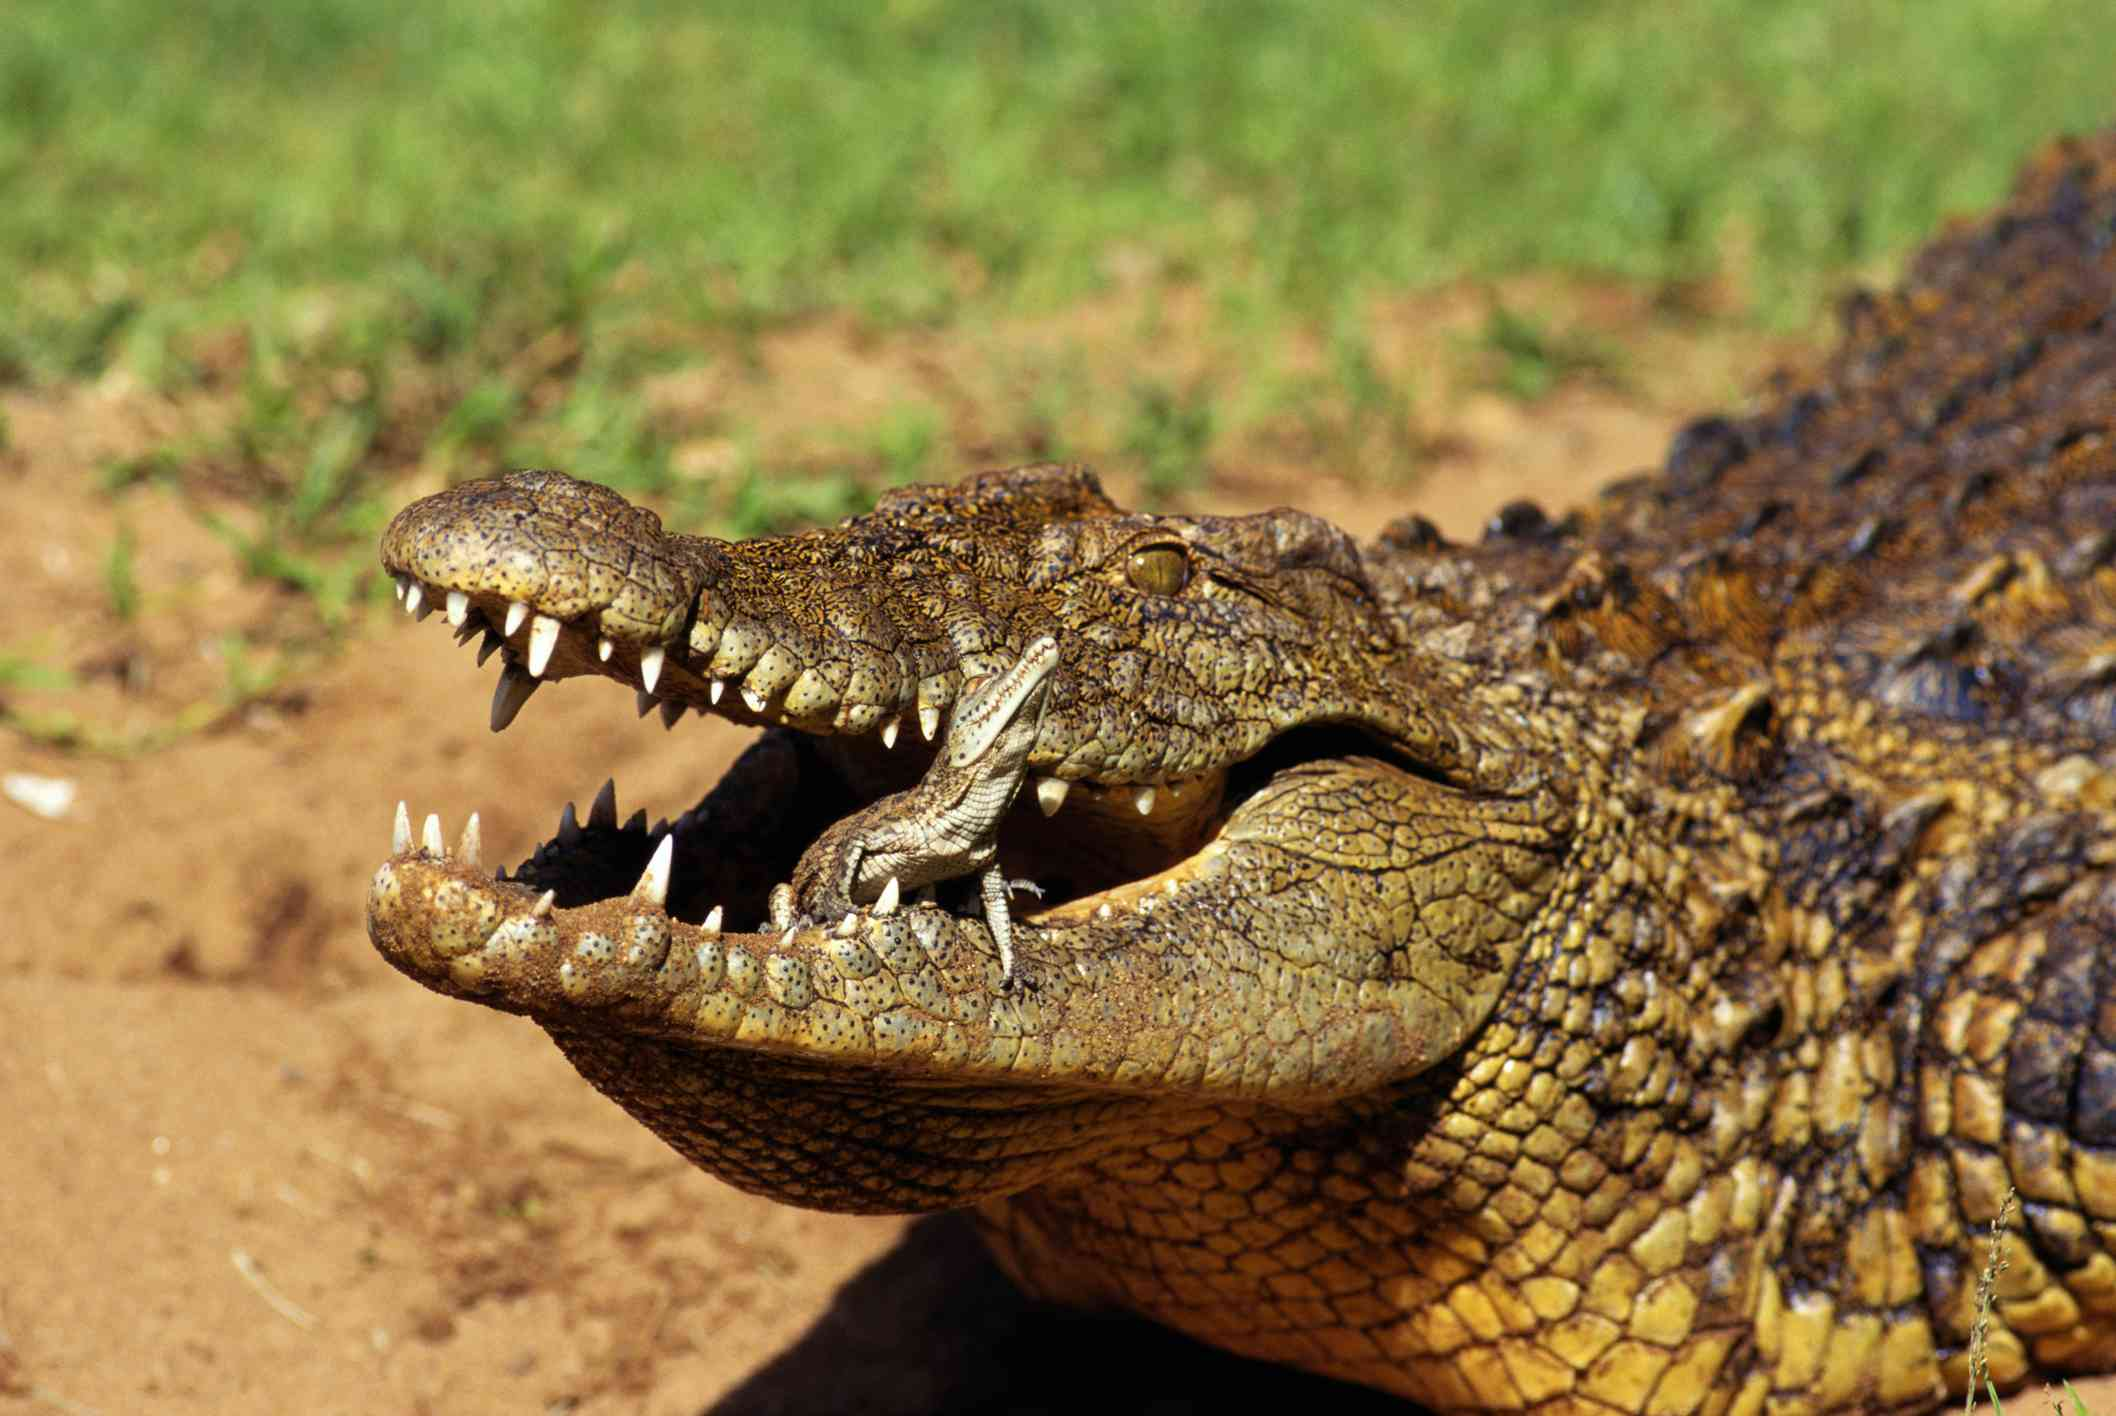 Crocodile carrying young in her mouth